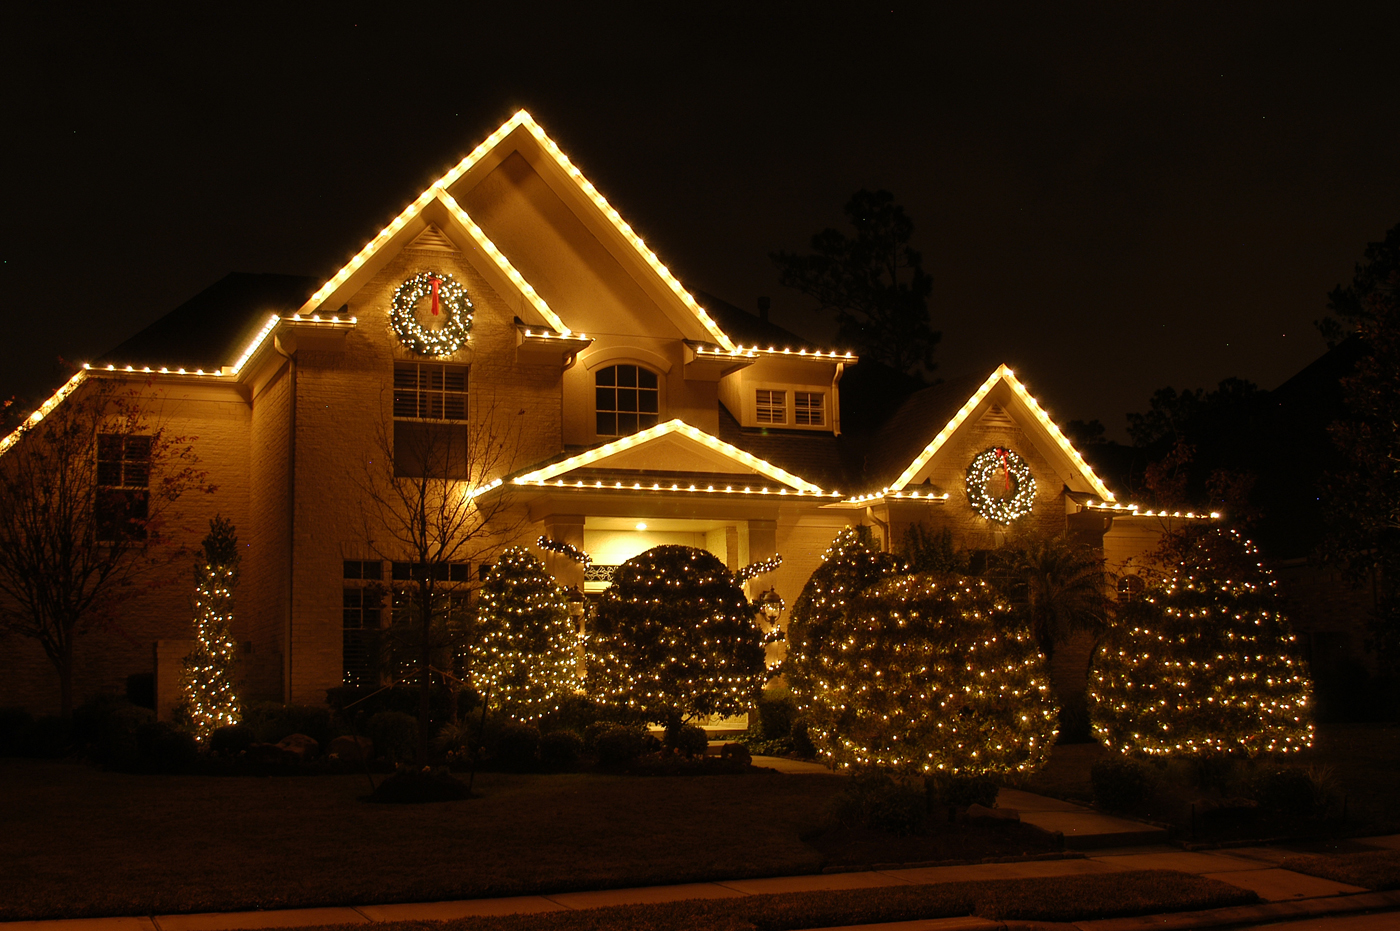 Outdoor Xmas Lights: Live the Easy Life with Professional Christmas Light Installation,Lighting